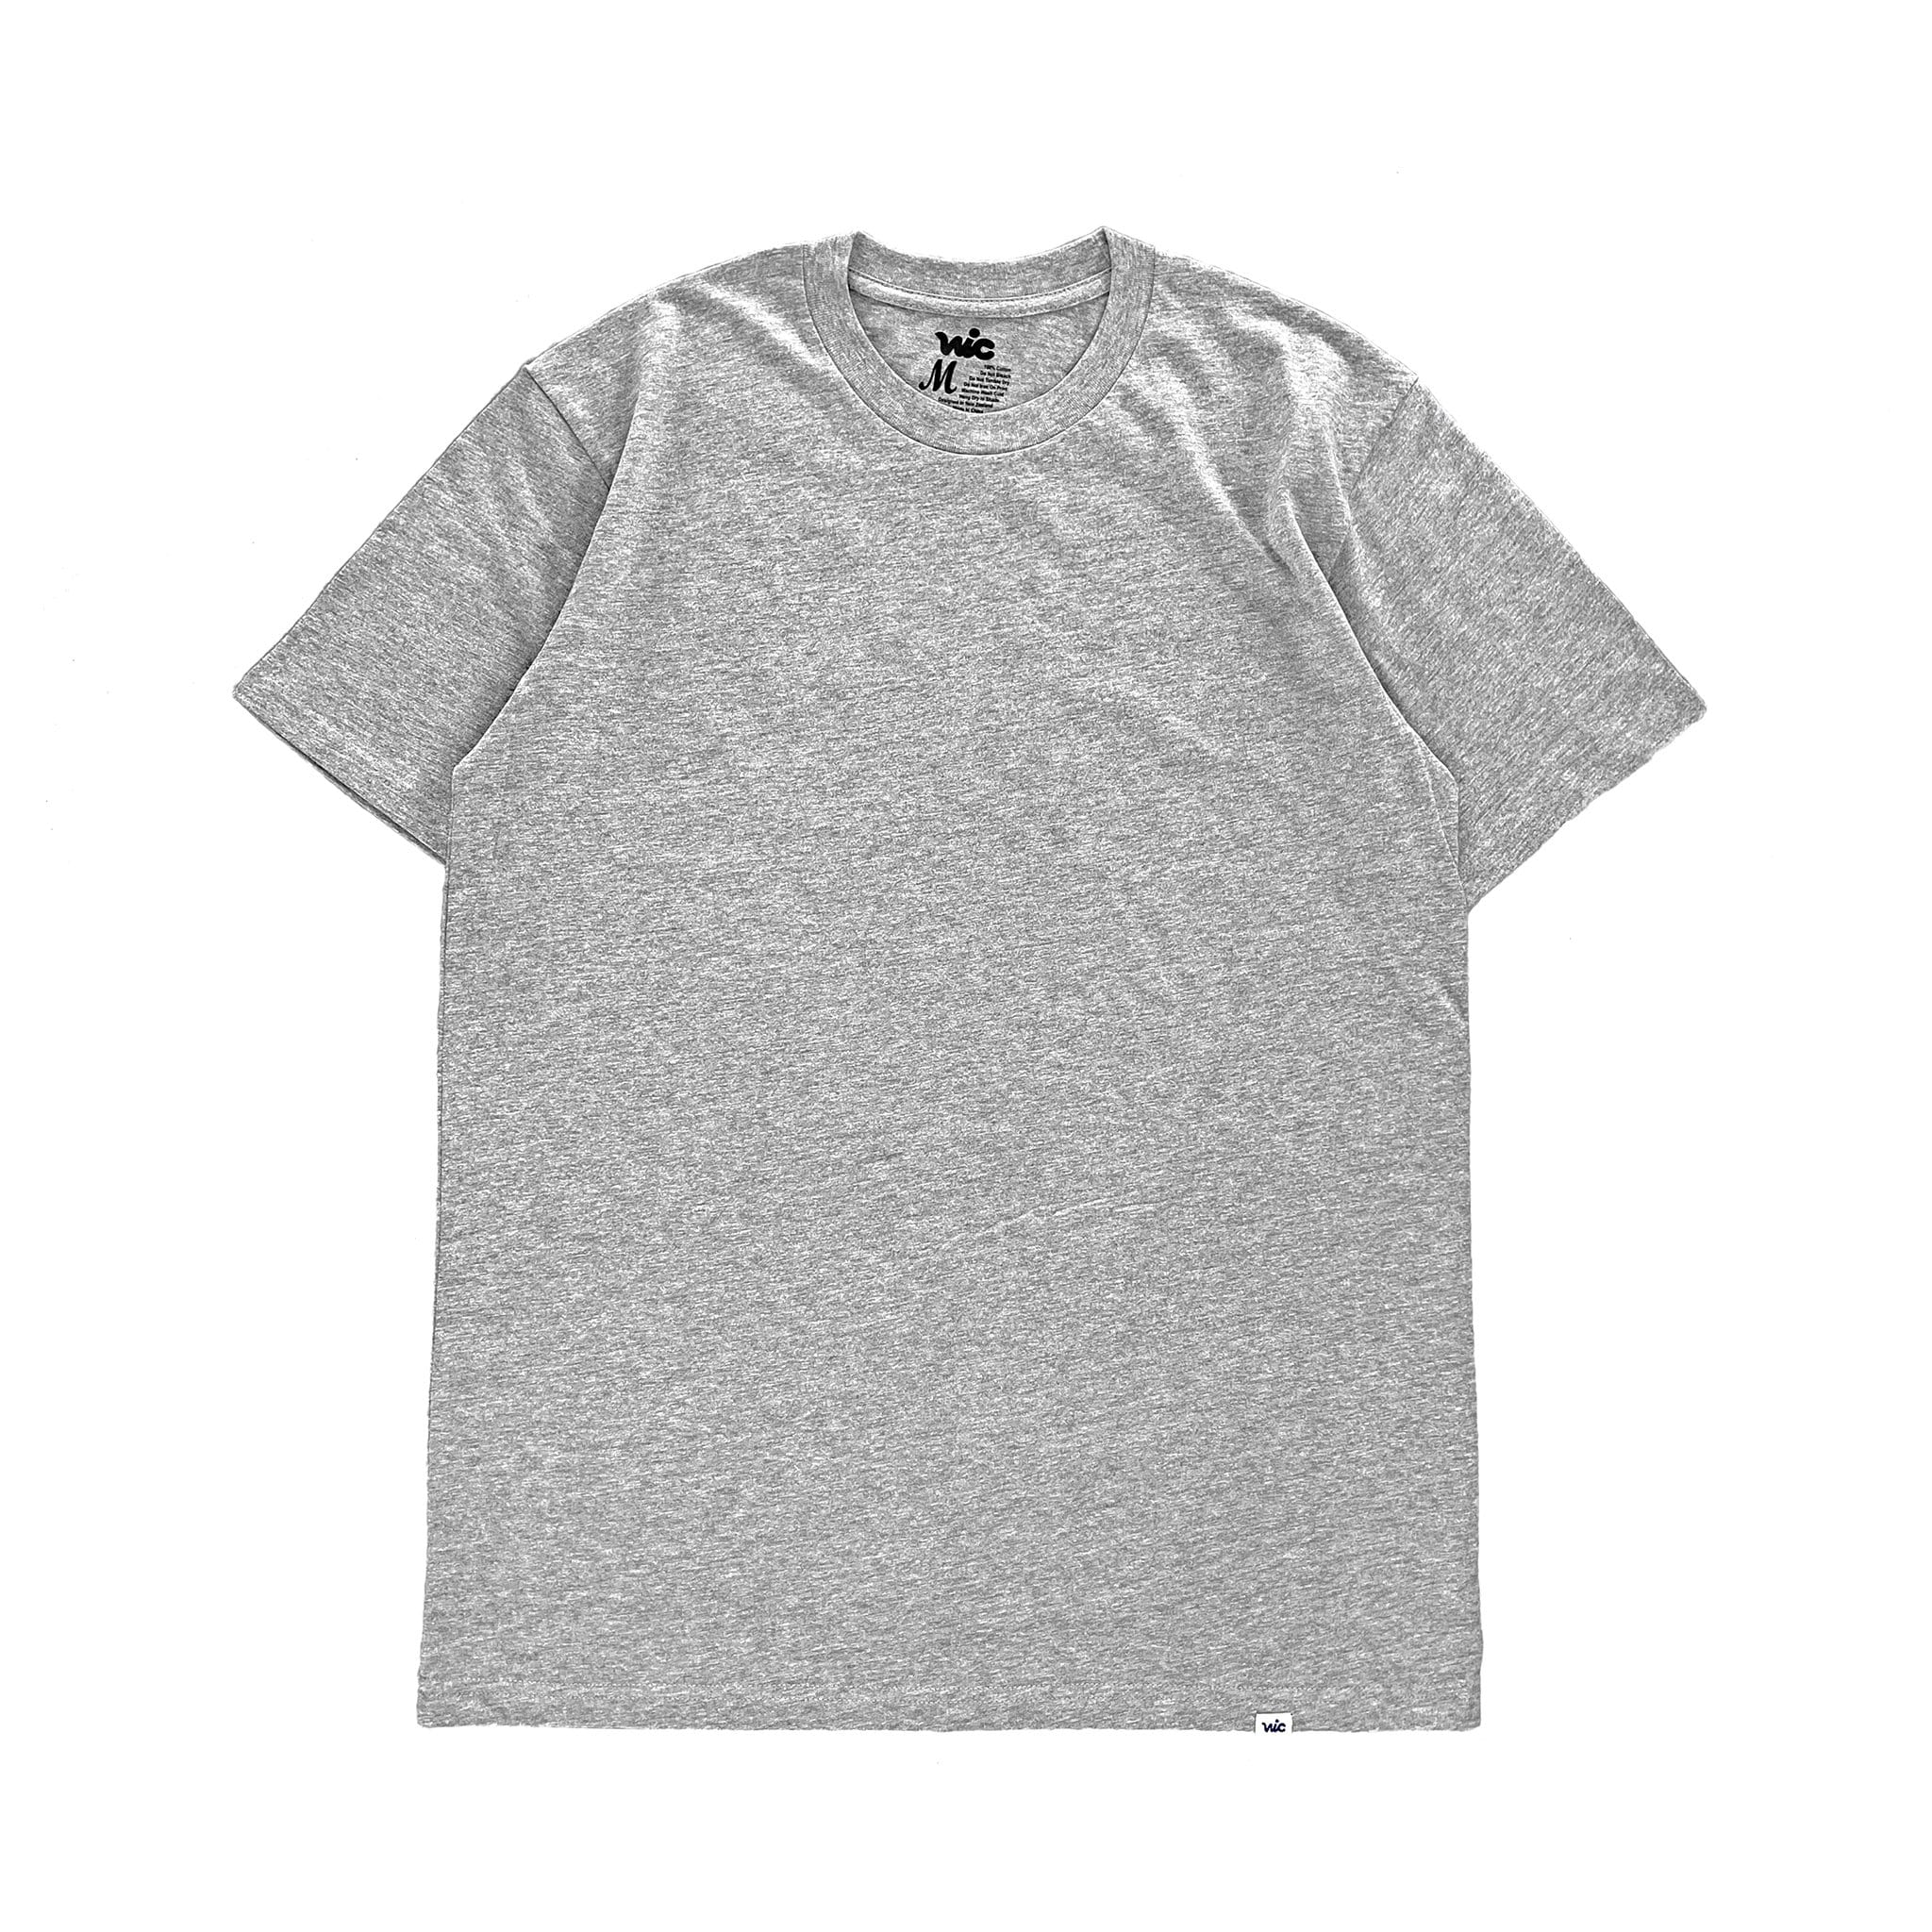 Premium quality long sleeve blank pocket tee shirt in heather grey by New Zealand skate and streetwear clothing label VIC Apparel. A clean, heavyweight & price point staple.